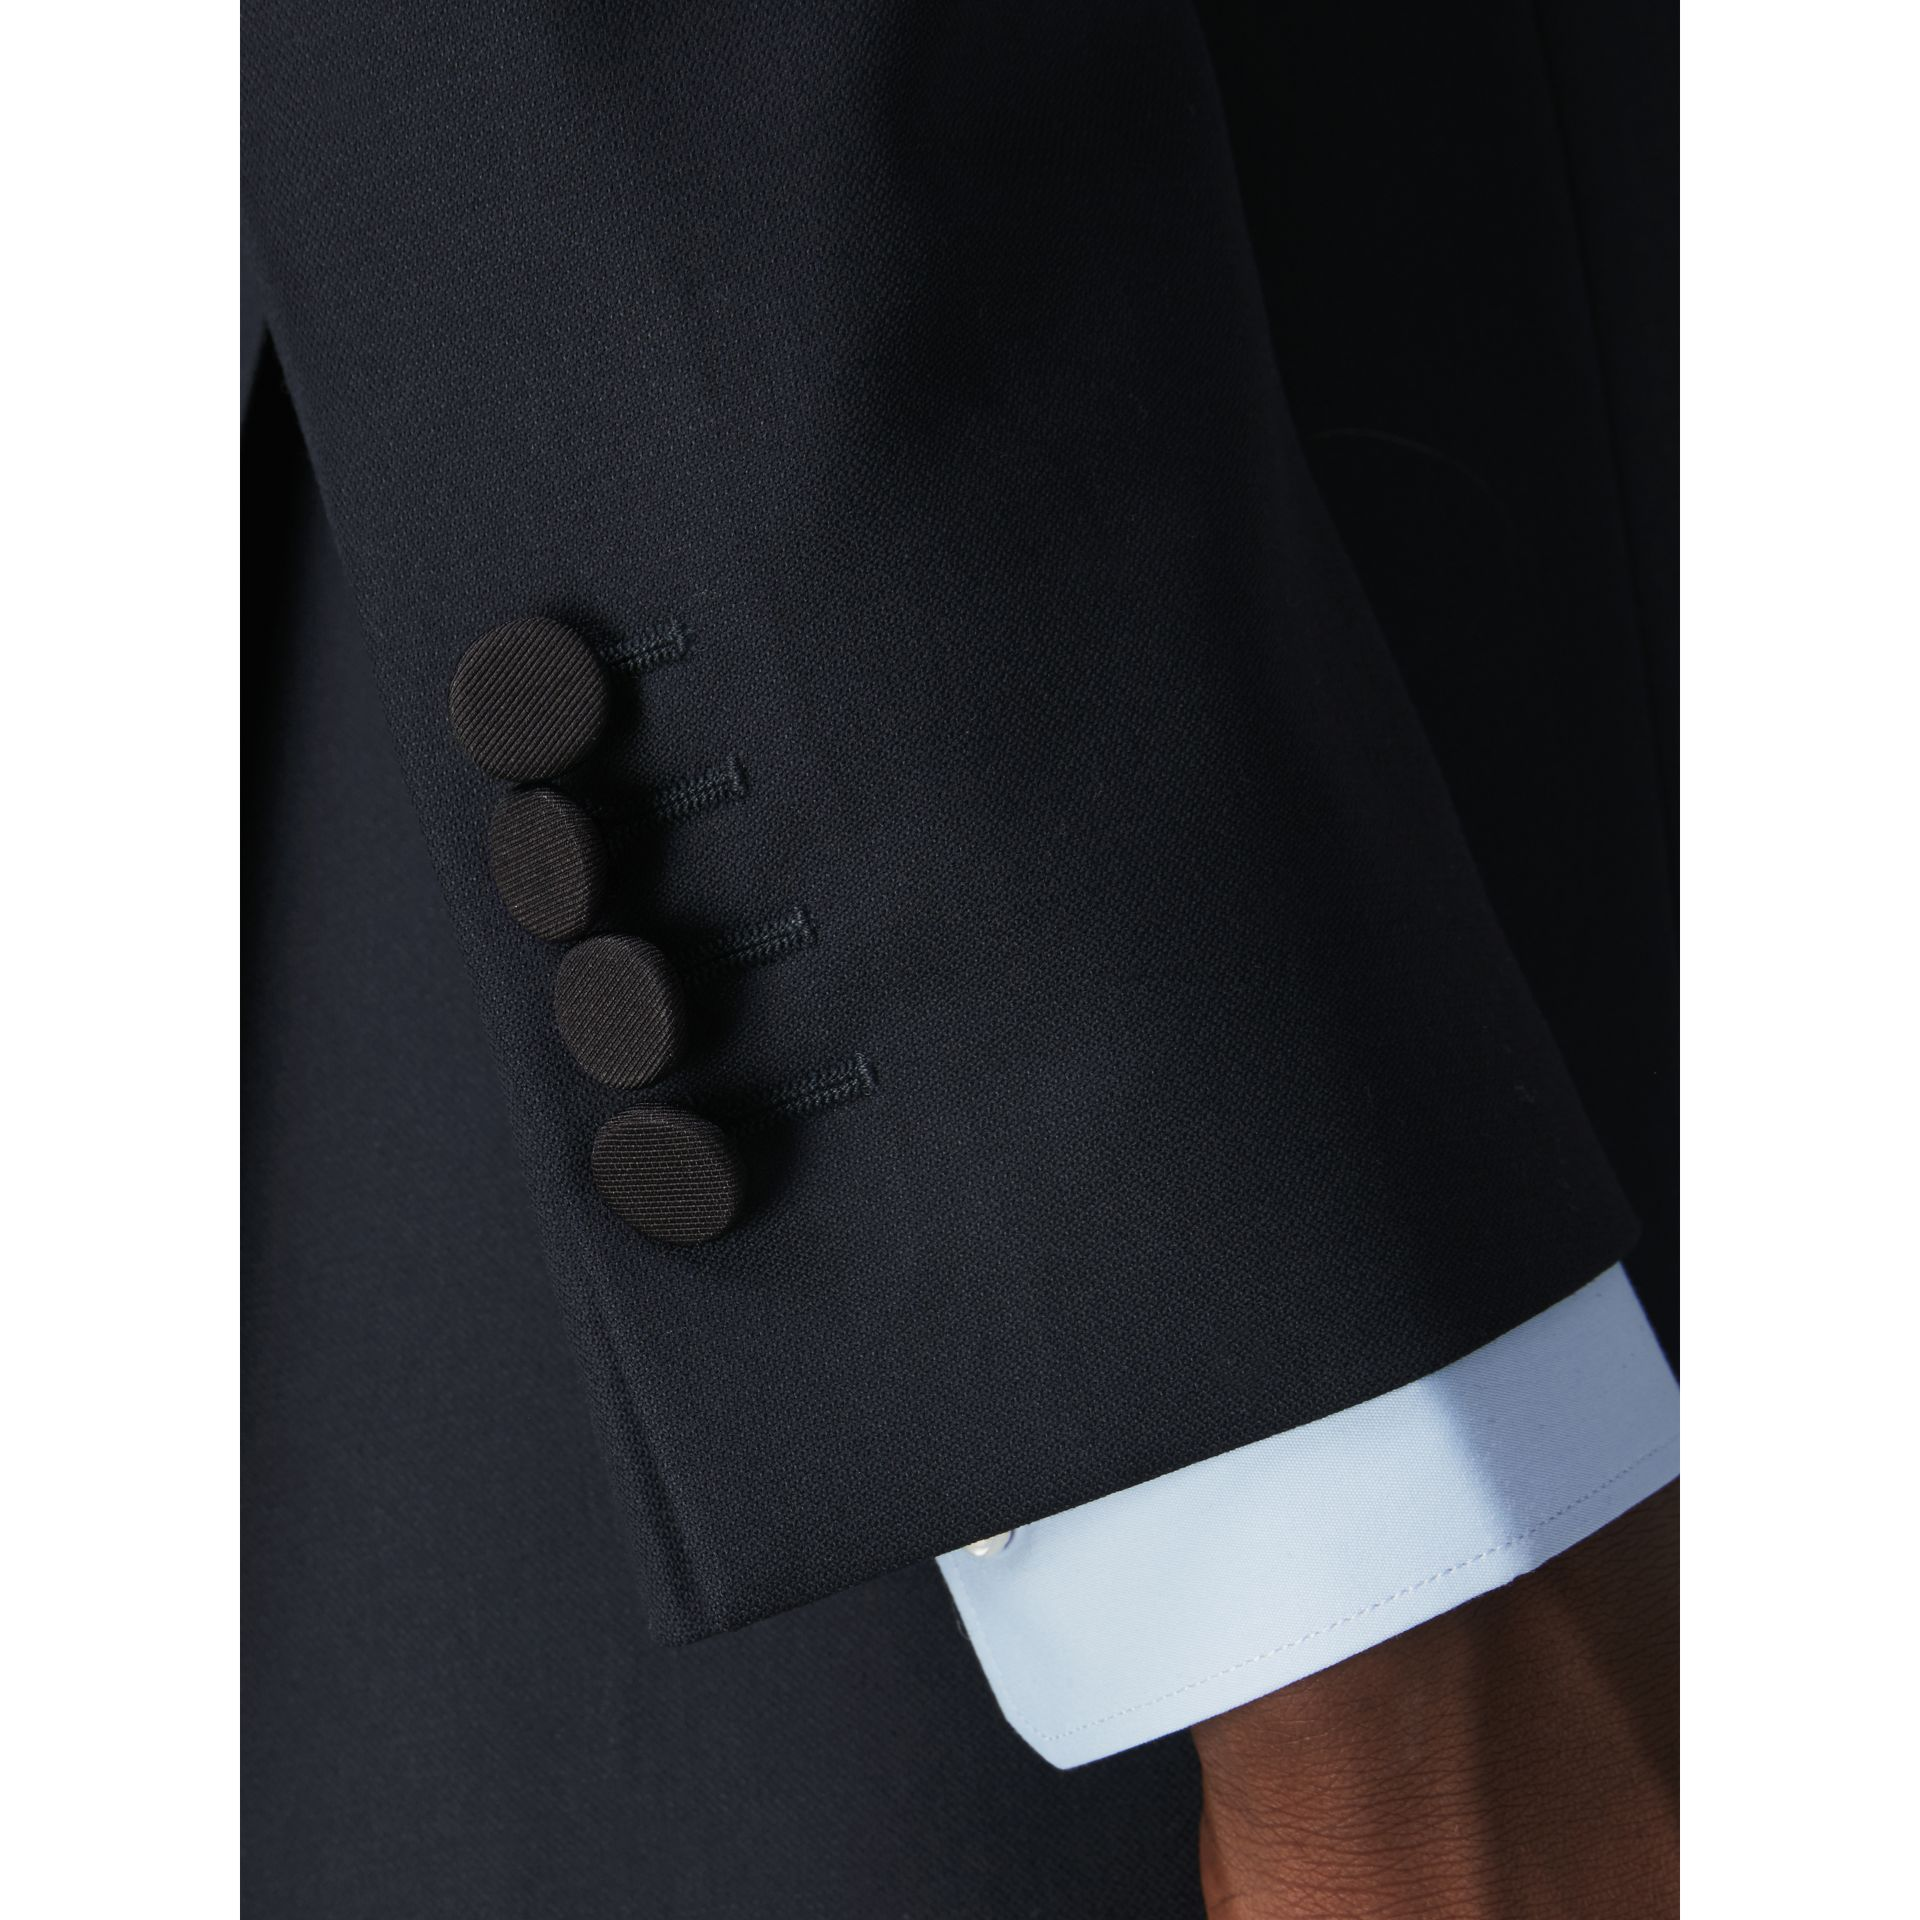 Slim Fit Wool Half-canvas Tuxedo in Navy - Men | Burberry Australia - gallery image 4